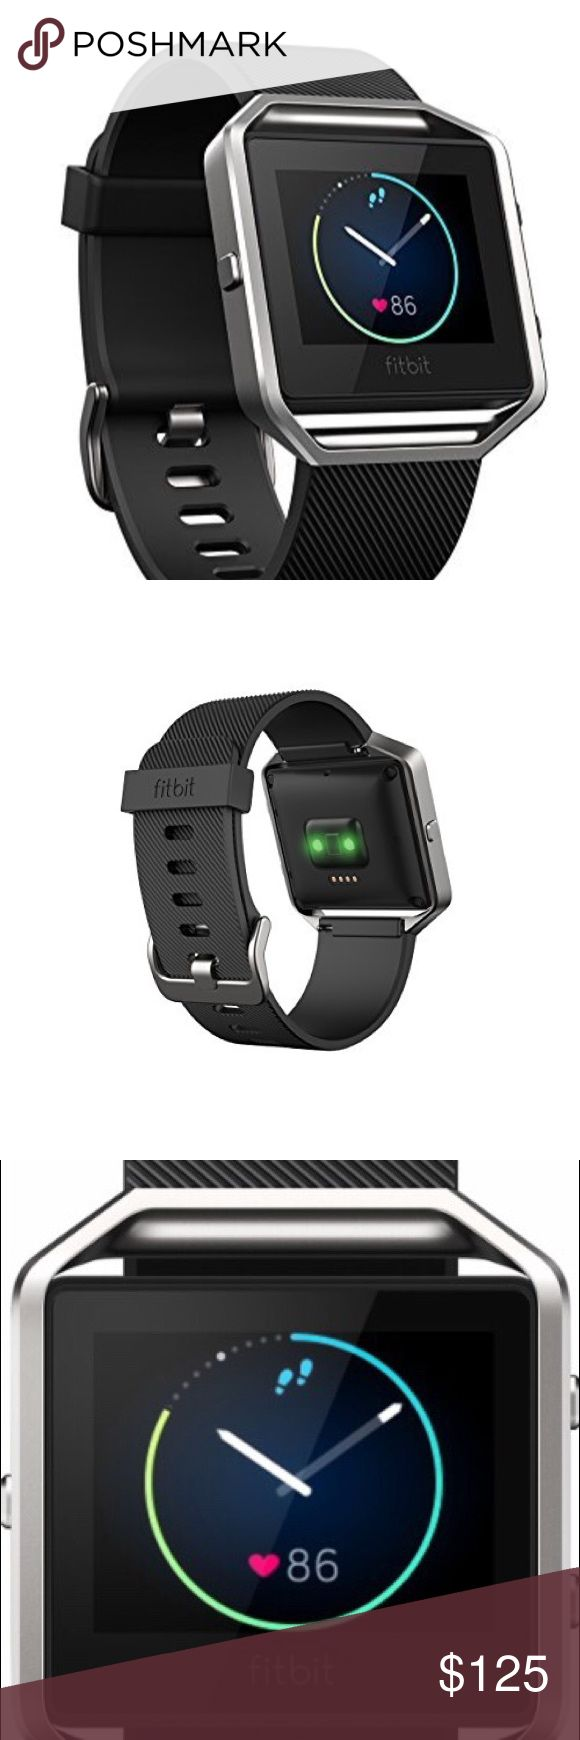 Fitbit Blaze Smart Fitness Watch, Black, Silver * Removable Stainless Steel Frame & Band (Black small) - with Charger * Color Touchscreen Display * Activity and Heart Rate Monitoring * Smart Notifications * Workout Coaching * Music Control * Sleep Tracking with Silent Alarms * Up to 5-Day Battery Life * Bluetooth Smart Wireless Connectivity * Windows, Mac, iOS, & Android Compatible Fitbit Accessories Watches